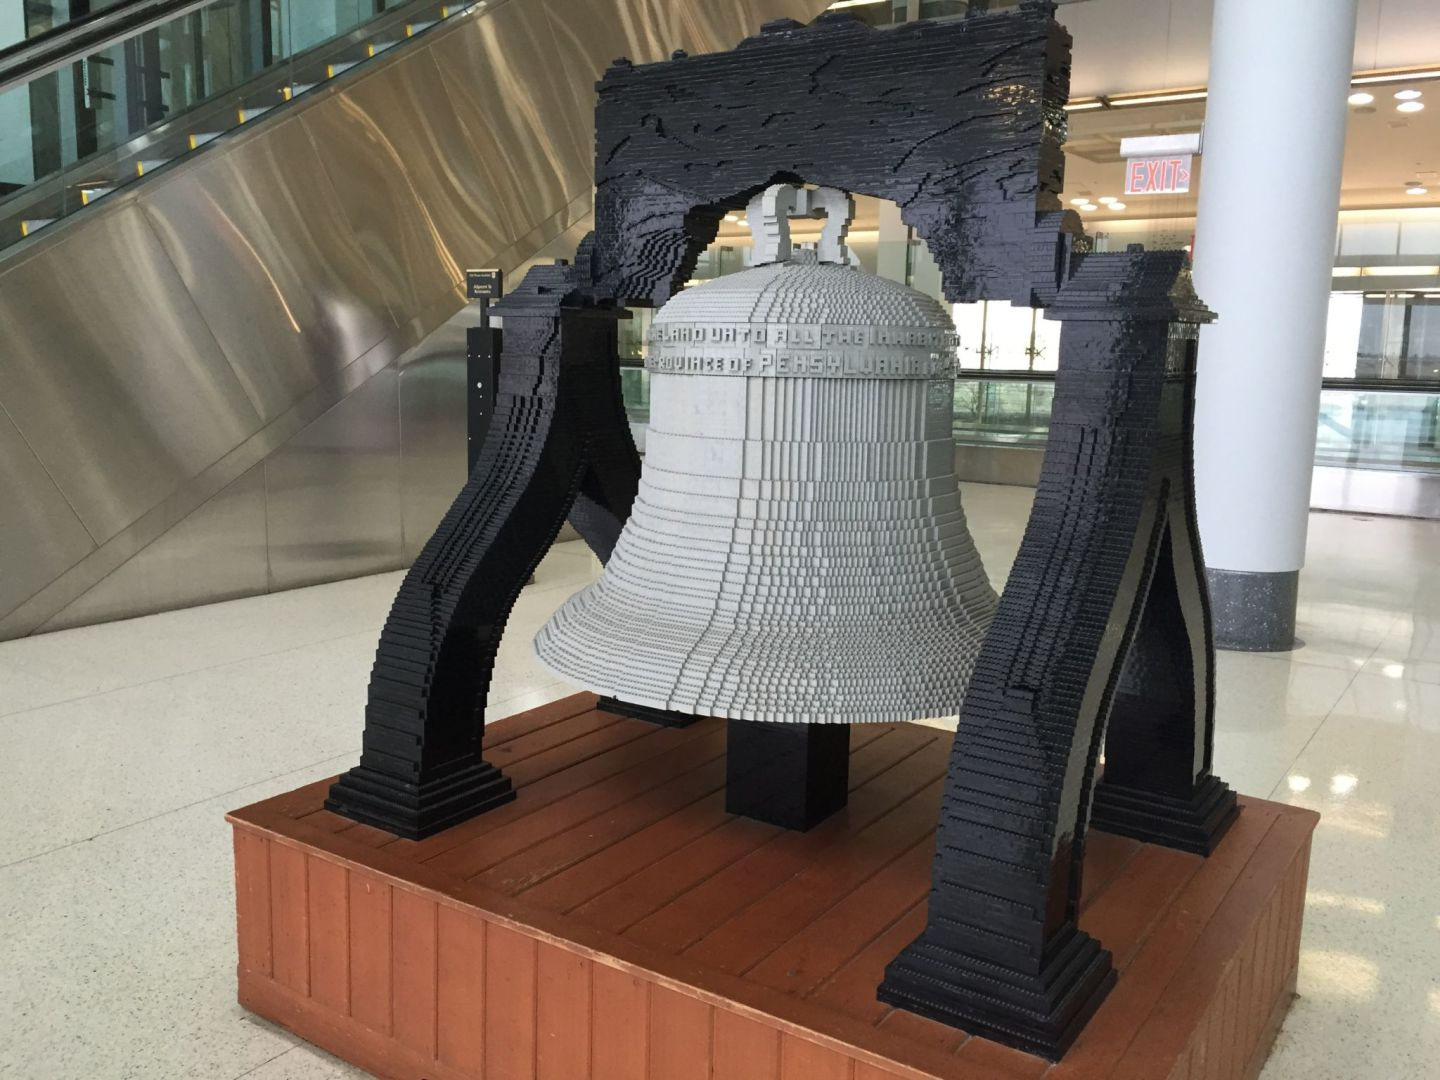 Yes, that is a Liberty Bell made out of Lego. Pic at Philadelphiaairport by @jabberingjourno